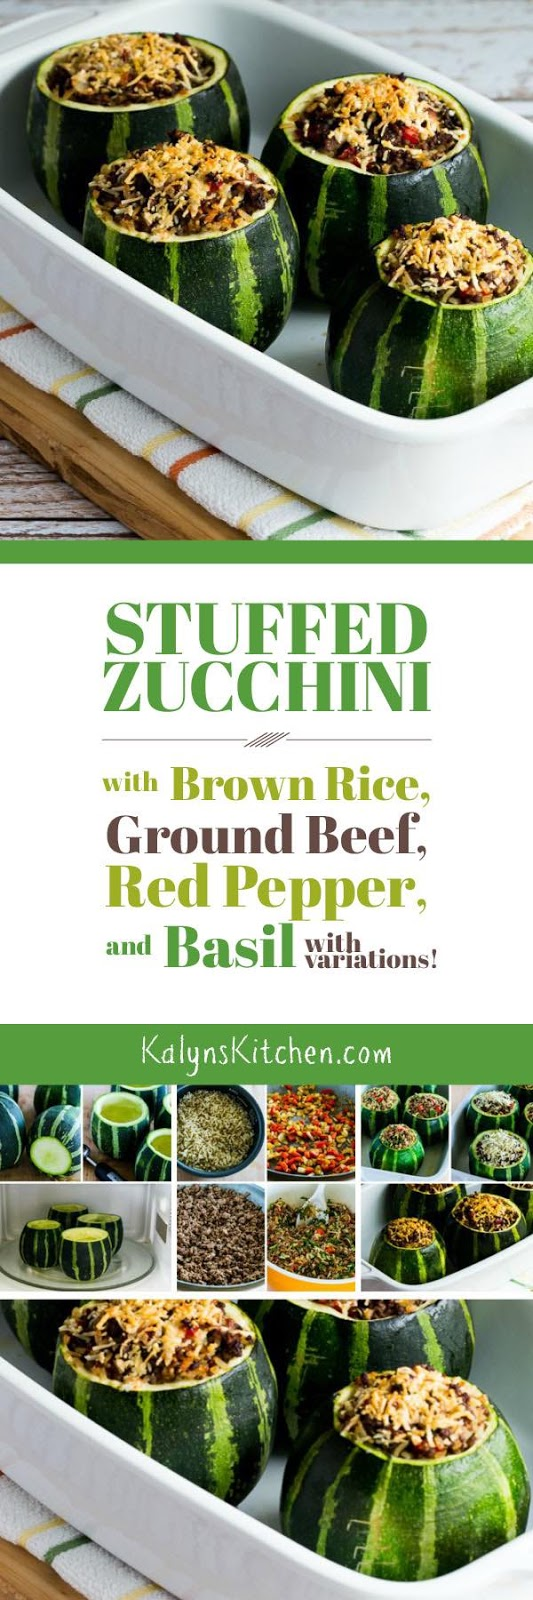 Stuffed Zucchini with Brown Rice, Ground Beef, Red Pepper, and Basil ...